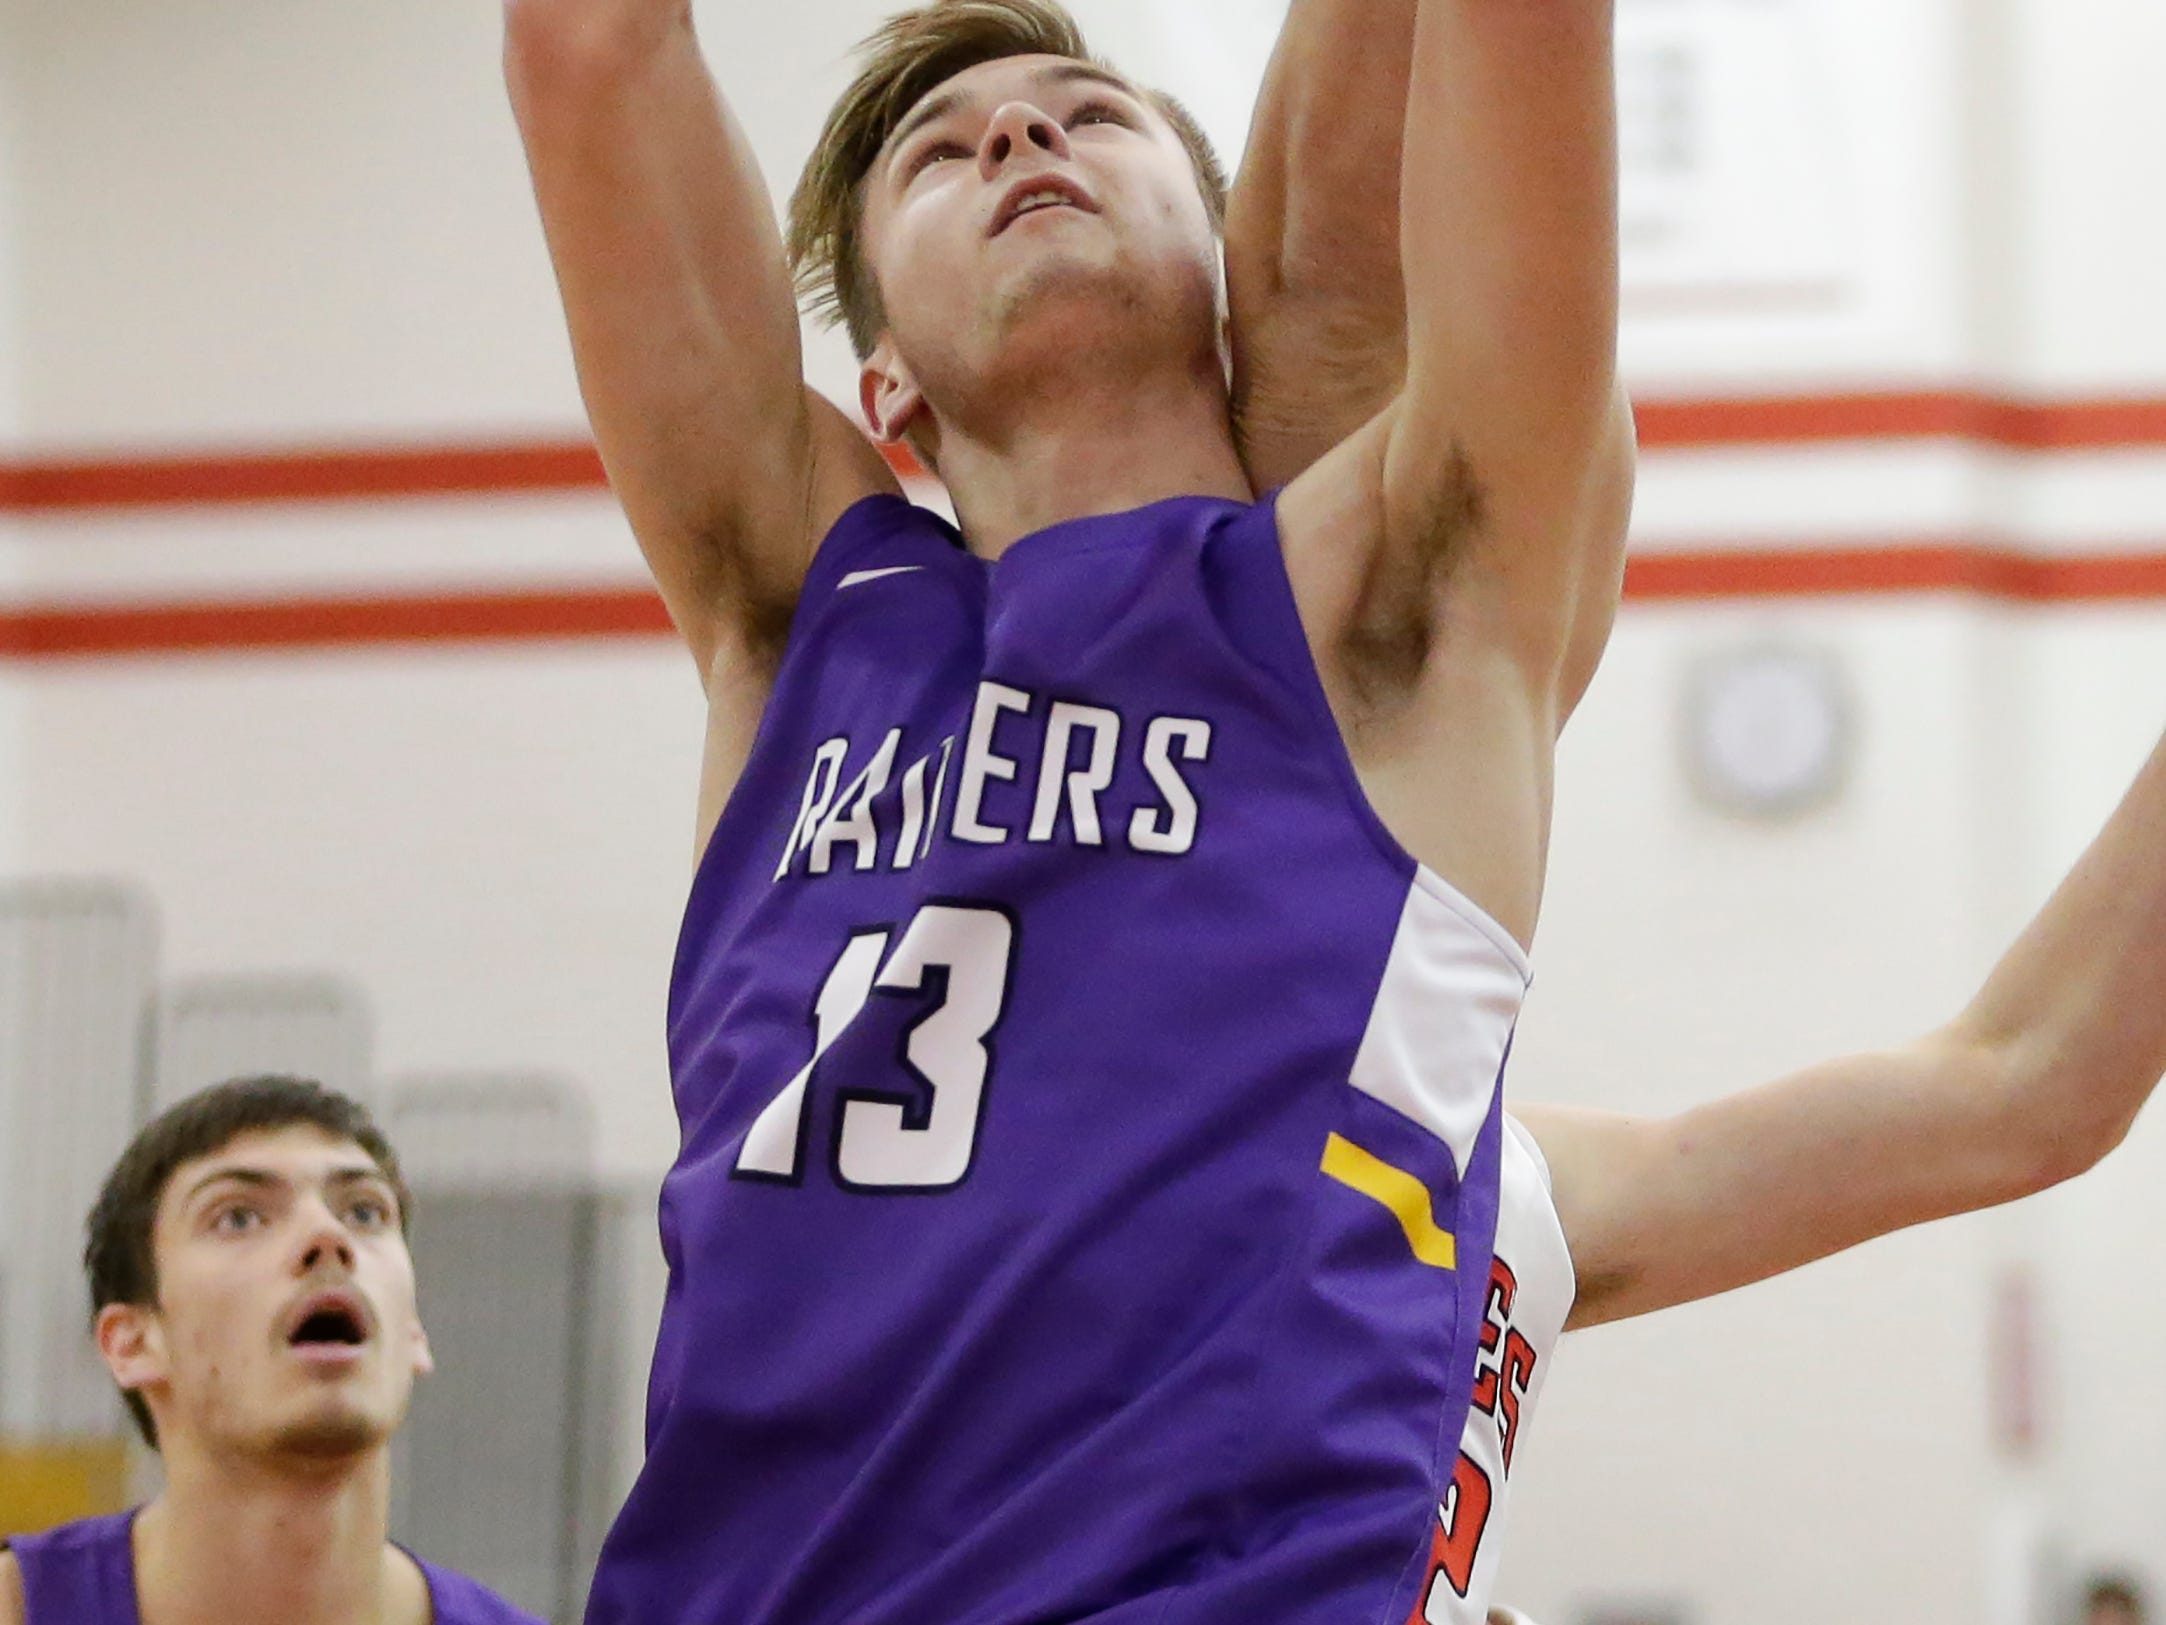 Two Rivers' David Tice (13) rebounds against Valders at Valders High School Thursday, January 24, 2019, in Valders, Wis. Joshua Clark/USA TODAY NETWORK-Wisconsin